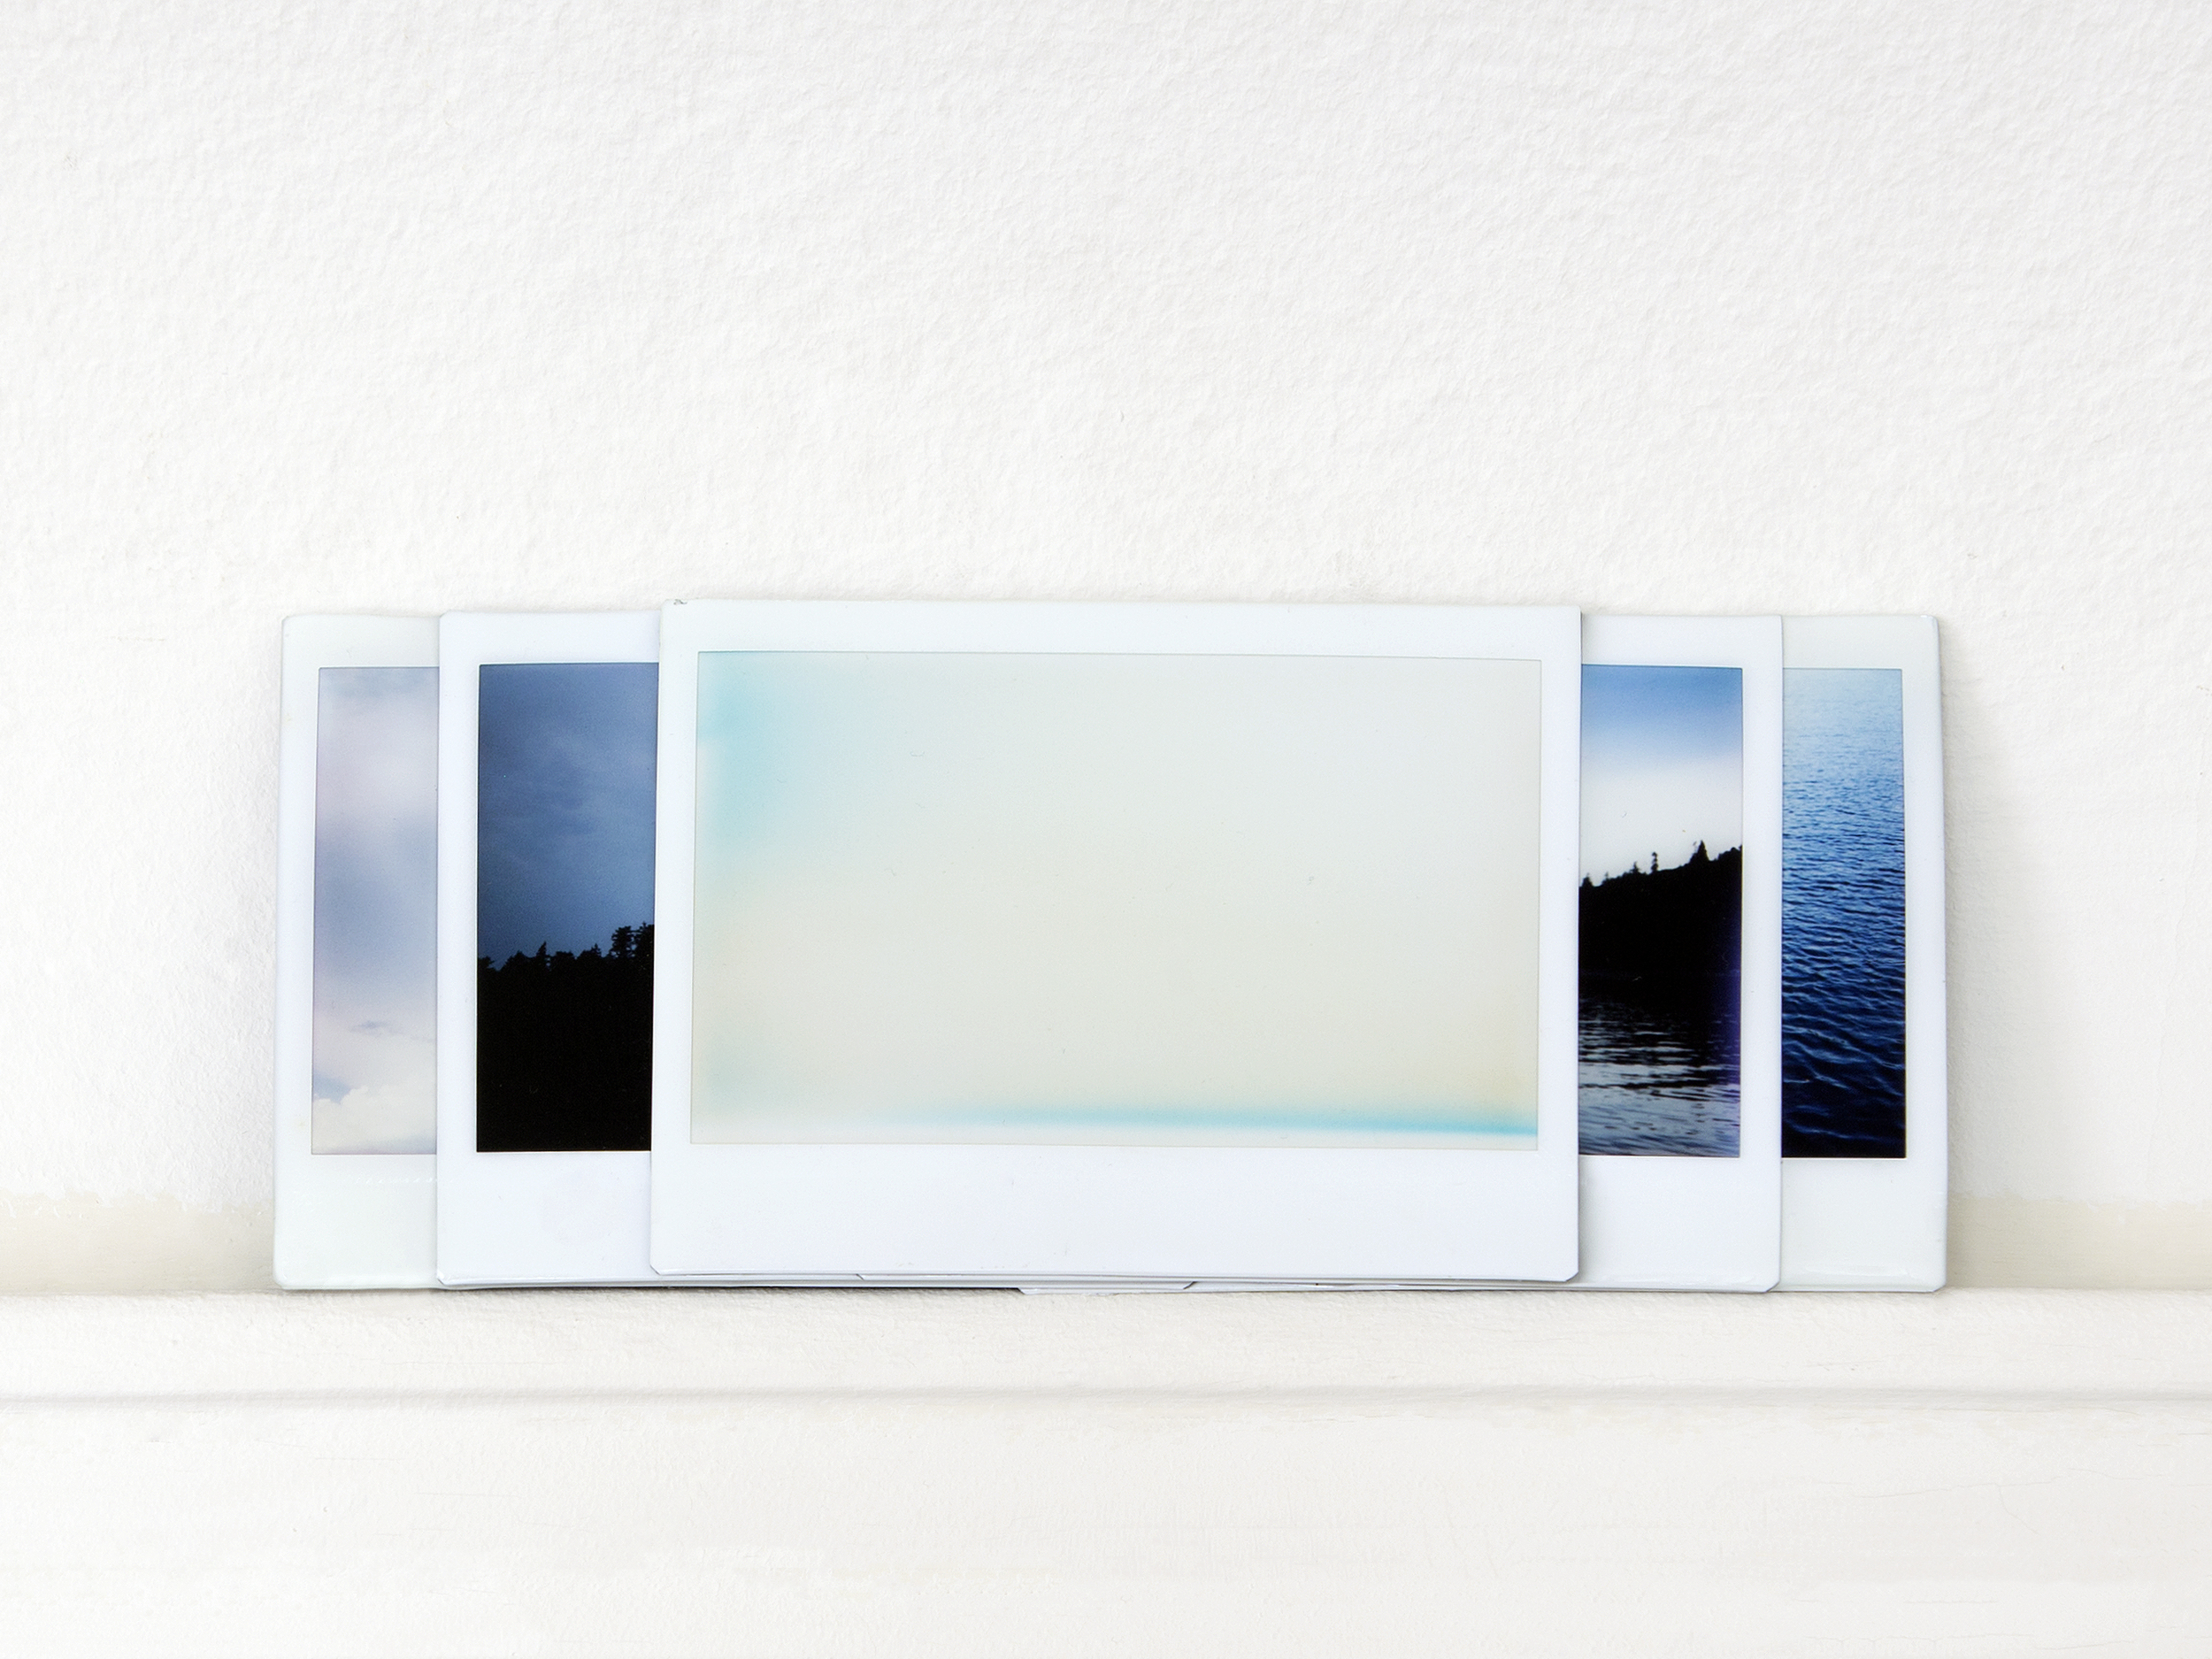 what it feels like to see  Fuji Instax photographs (5), resin, 2015   Statement + Info